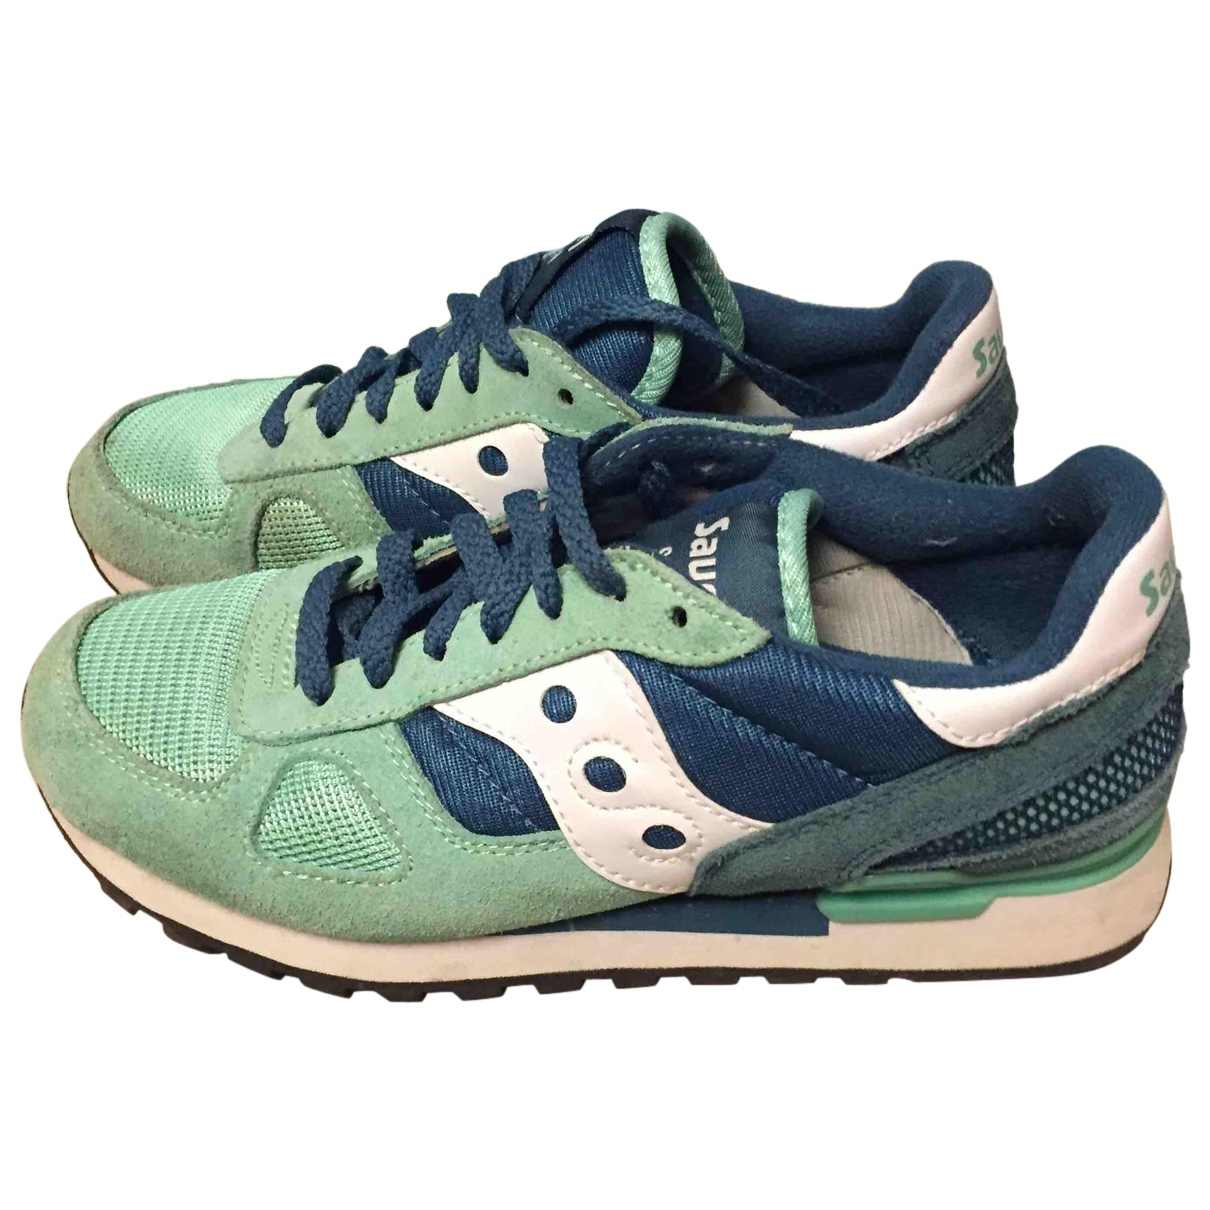 Saucony N Green Suede Trainers for Women 39 EU